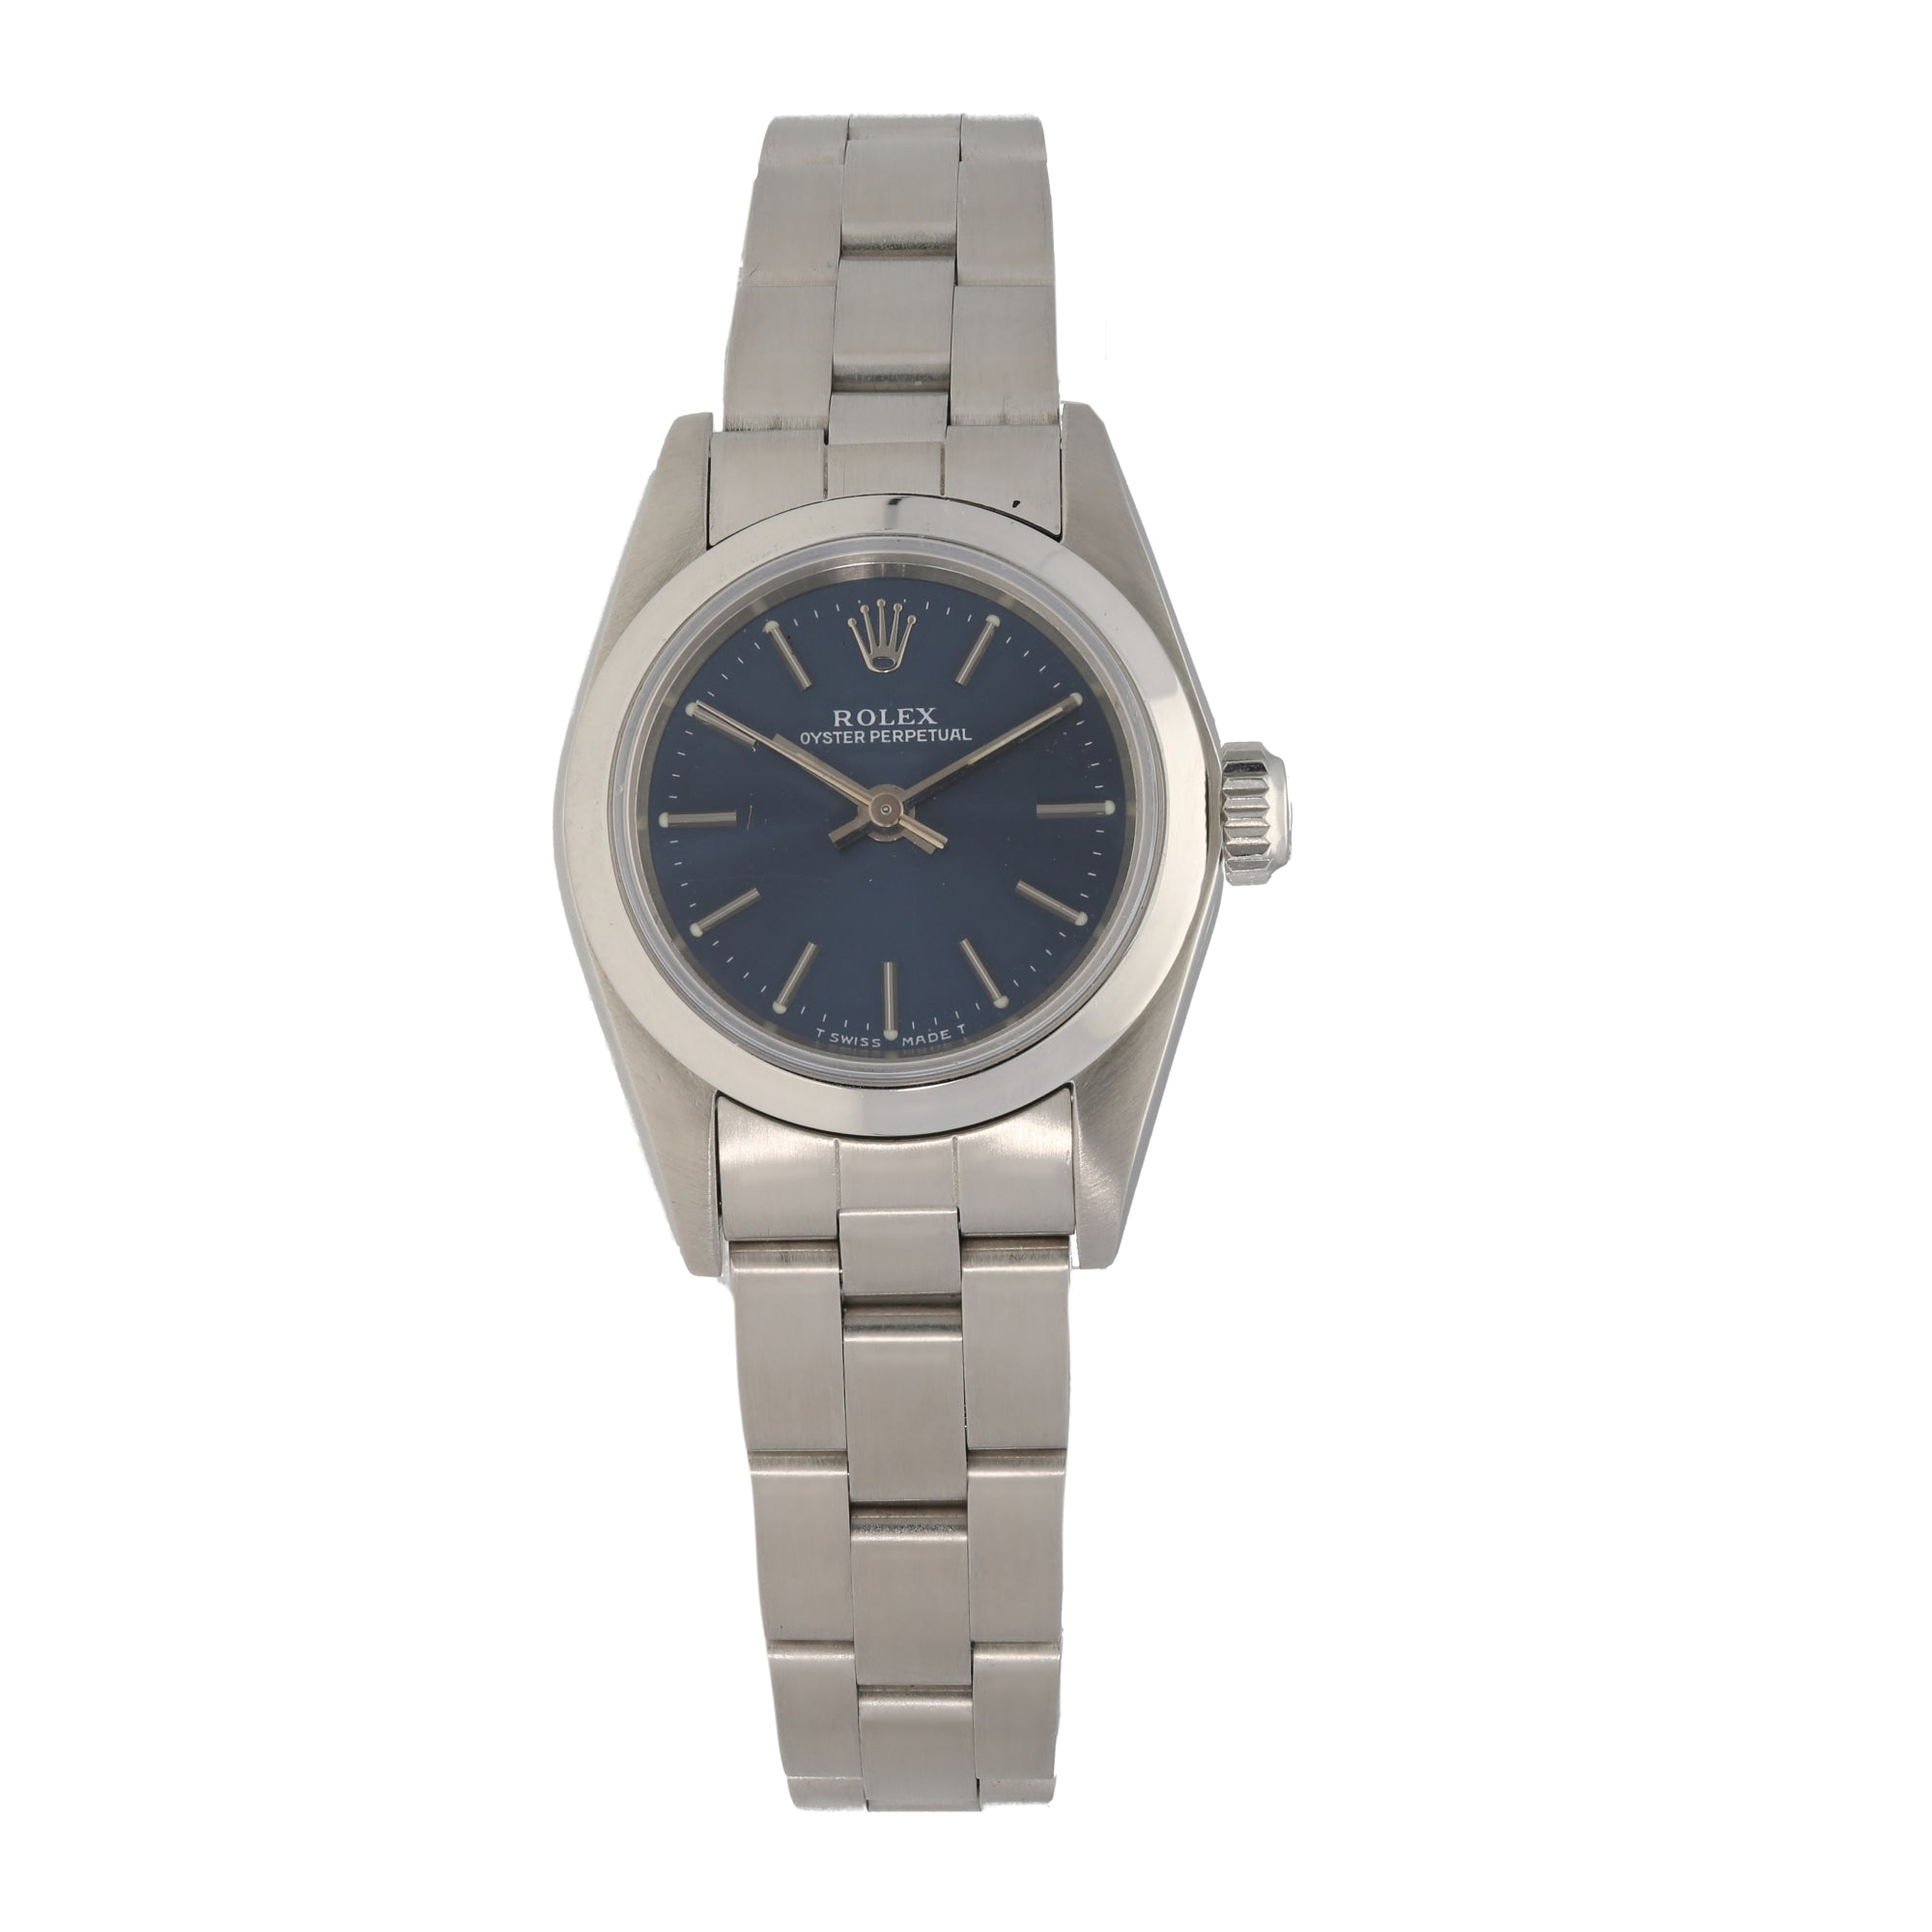 Rolex Oyster Perpetual 67180 24mm Stainless Steel Ladies Watch